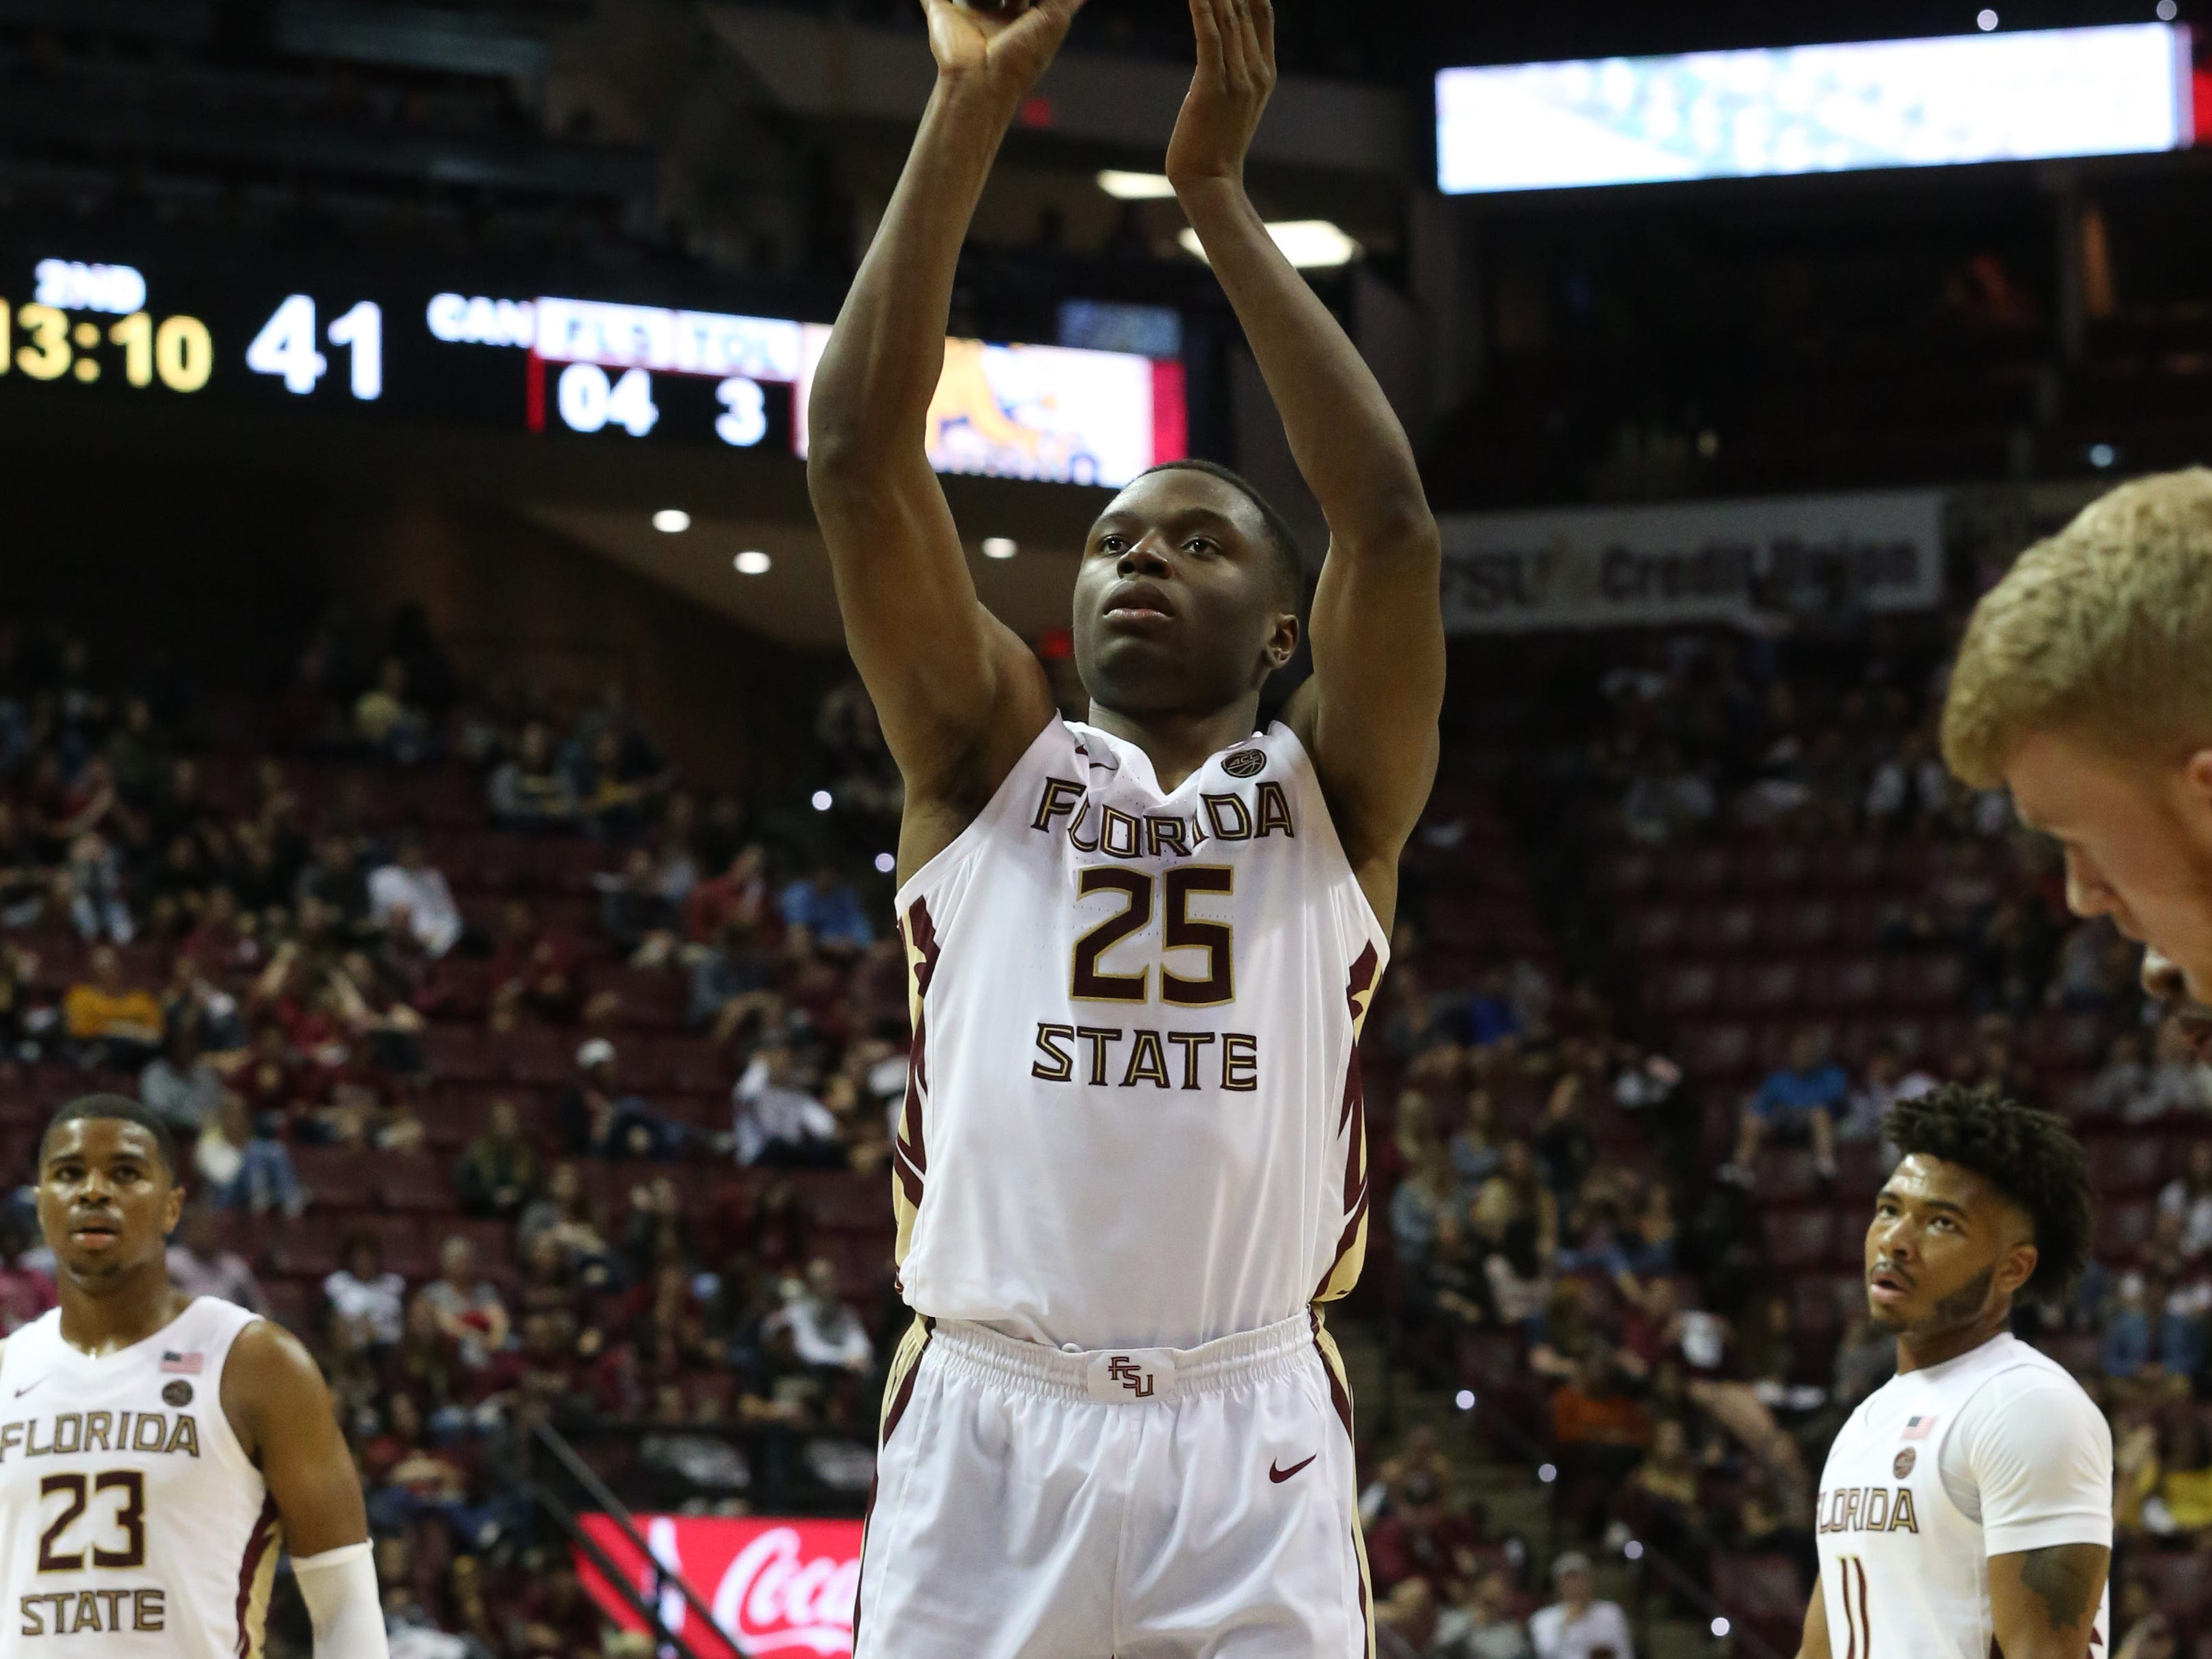 Florida State Seminoles forward Mfiondu Kabengele (25) shoots a free throw as the Florida State Seminoles host the Canisius Golden Griffins for basketball in the Tucker Civic Center, Monday, Nov. 19, 2018.